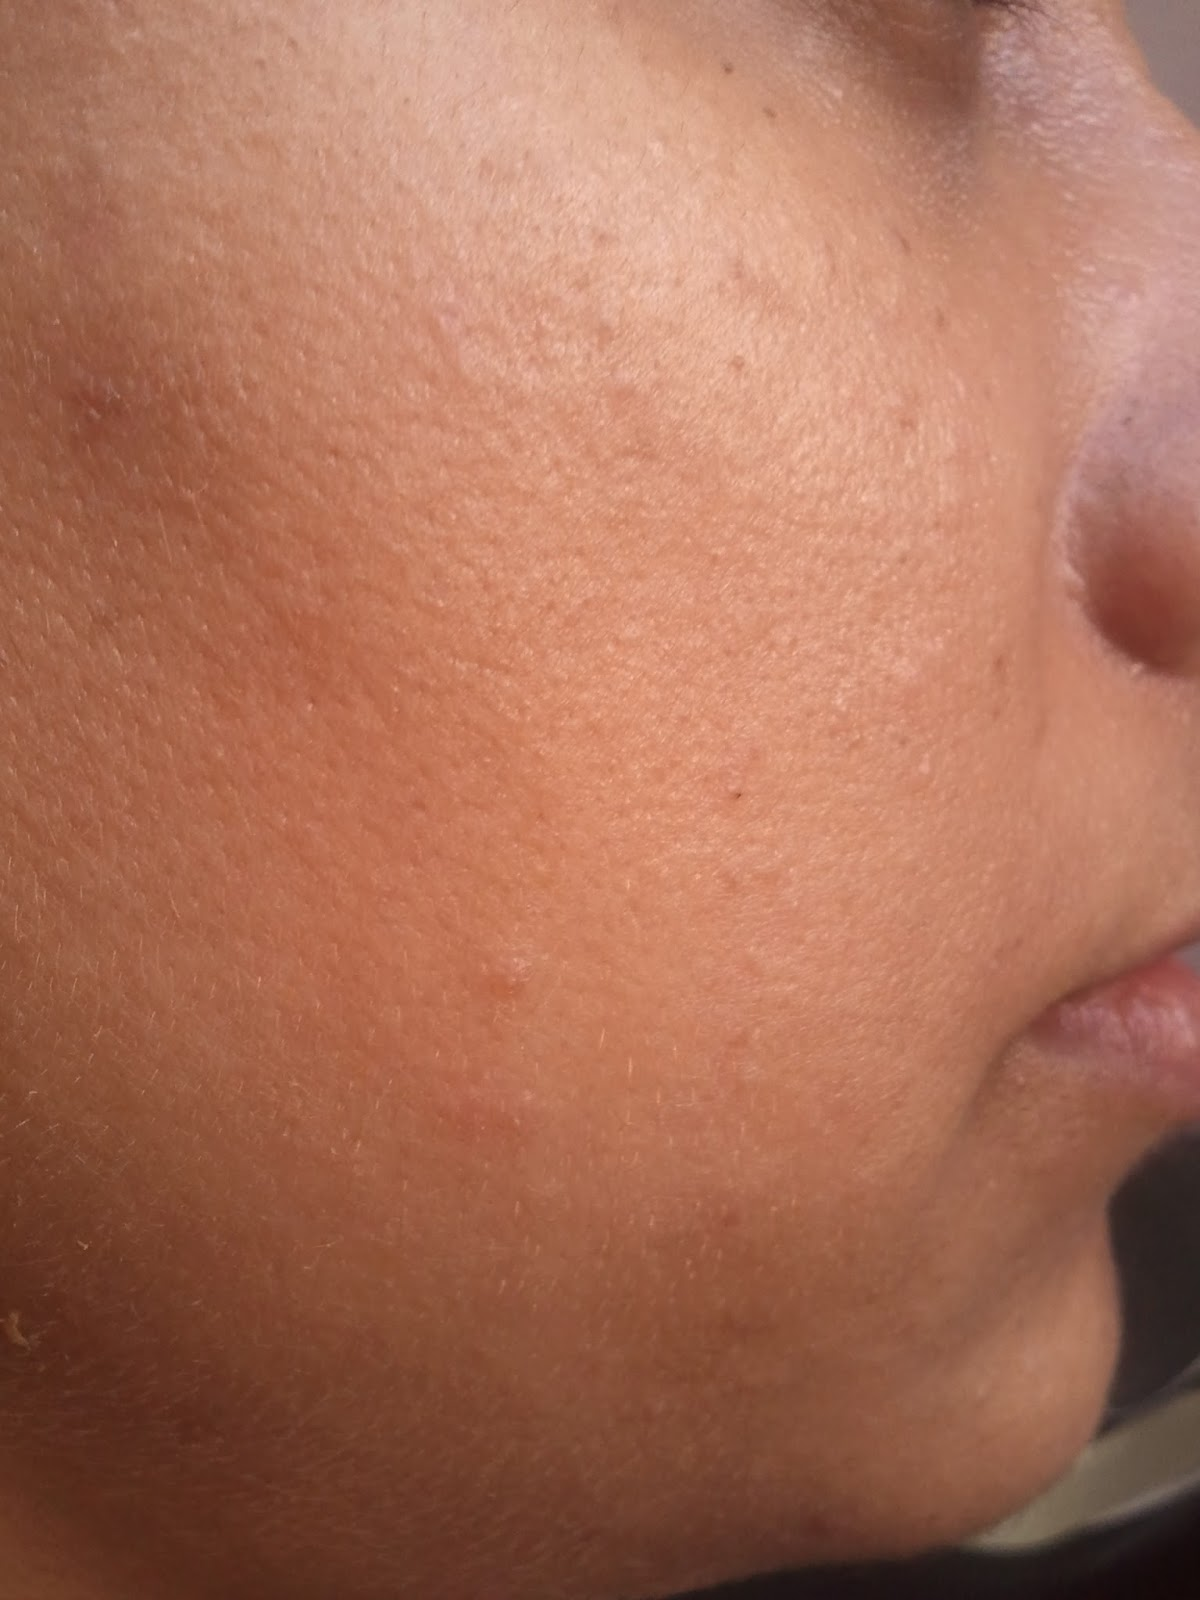 Prompt reply cure for facial warts have